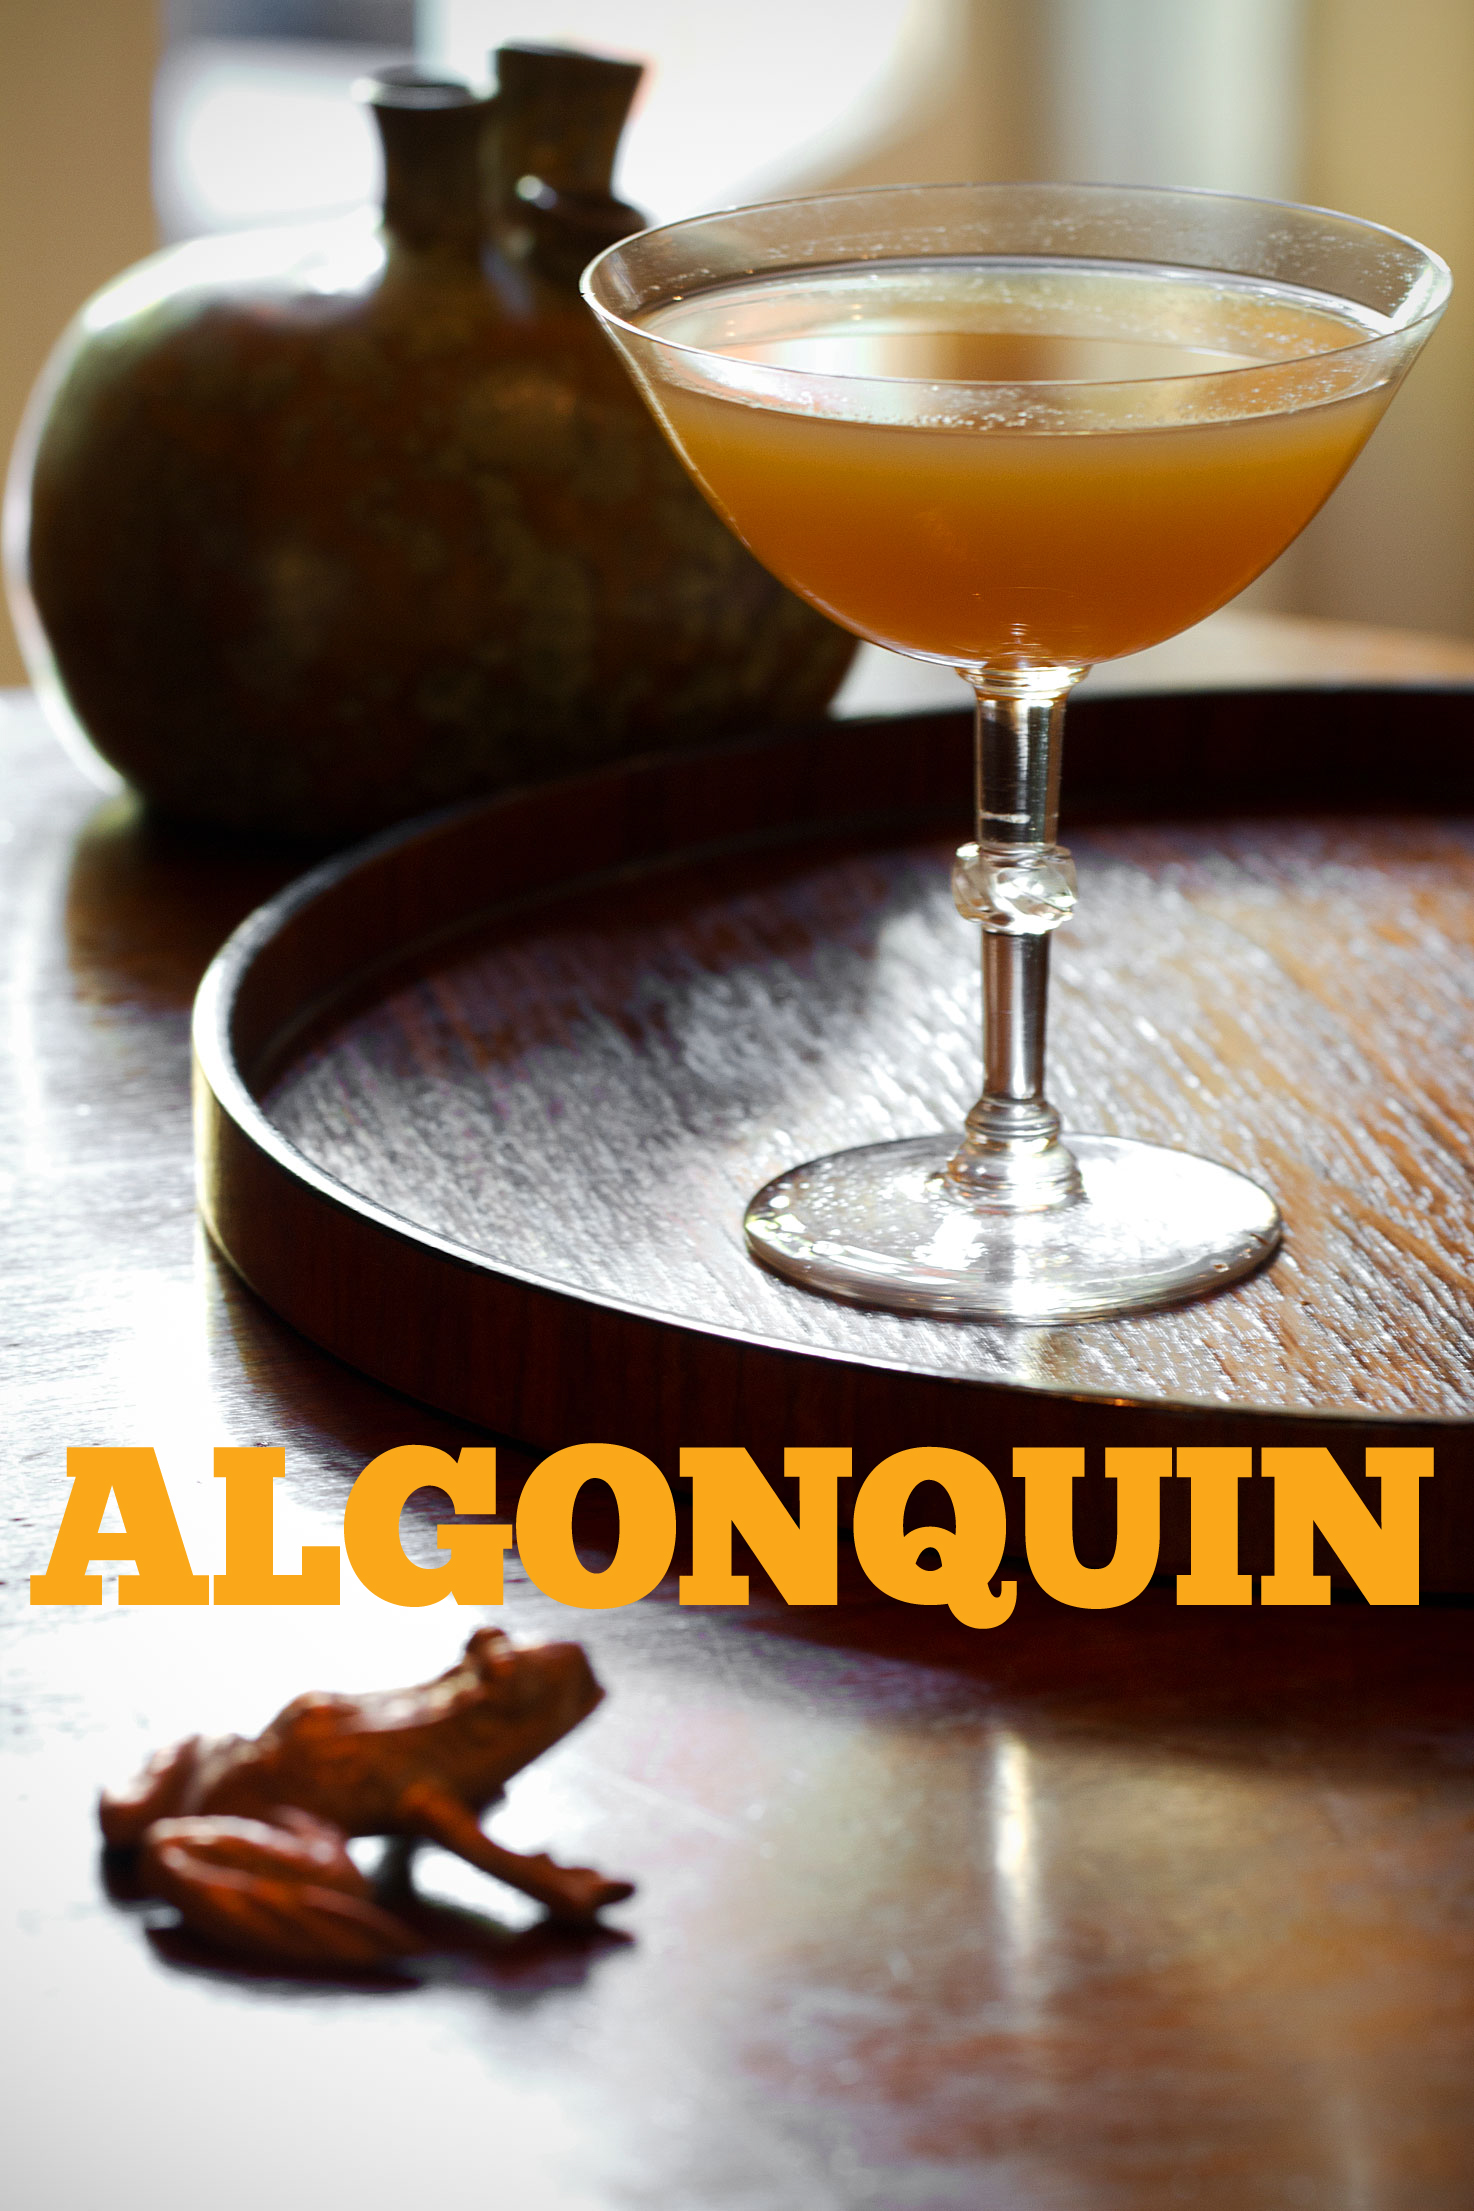 Algonquin Cocktail: Rye, Vermouth, and Pineapple Juice